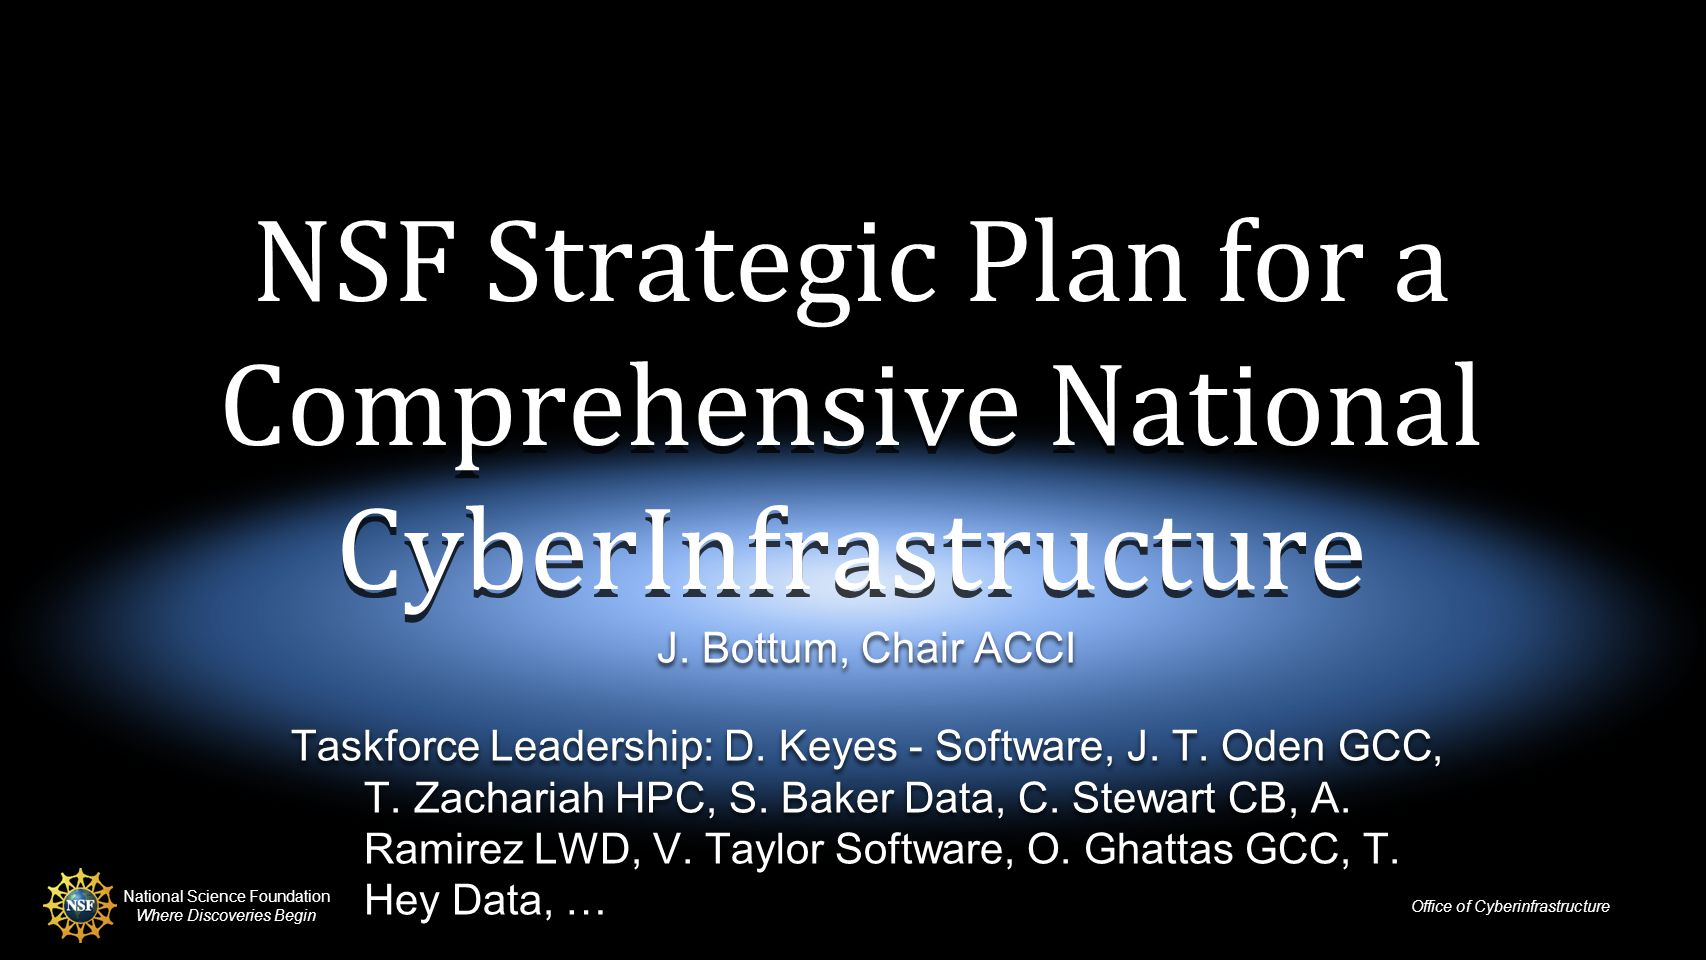 National Science Foundation Where Discoveries Begin Office of Cyberinfrastructure Drivers The nations existing cyberinfrastructure –broadly considered - is not adequate to meet the needs of the current U.S.